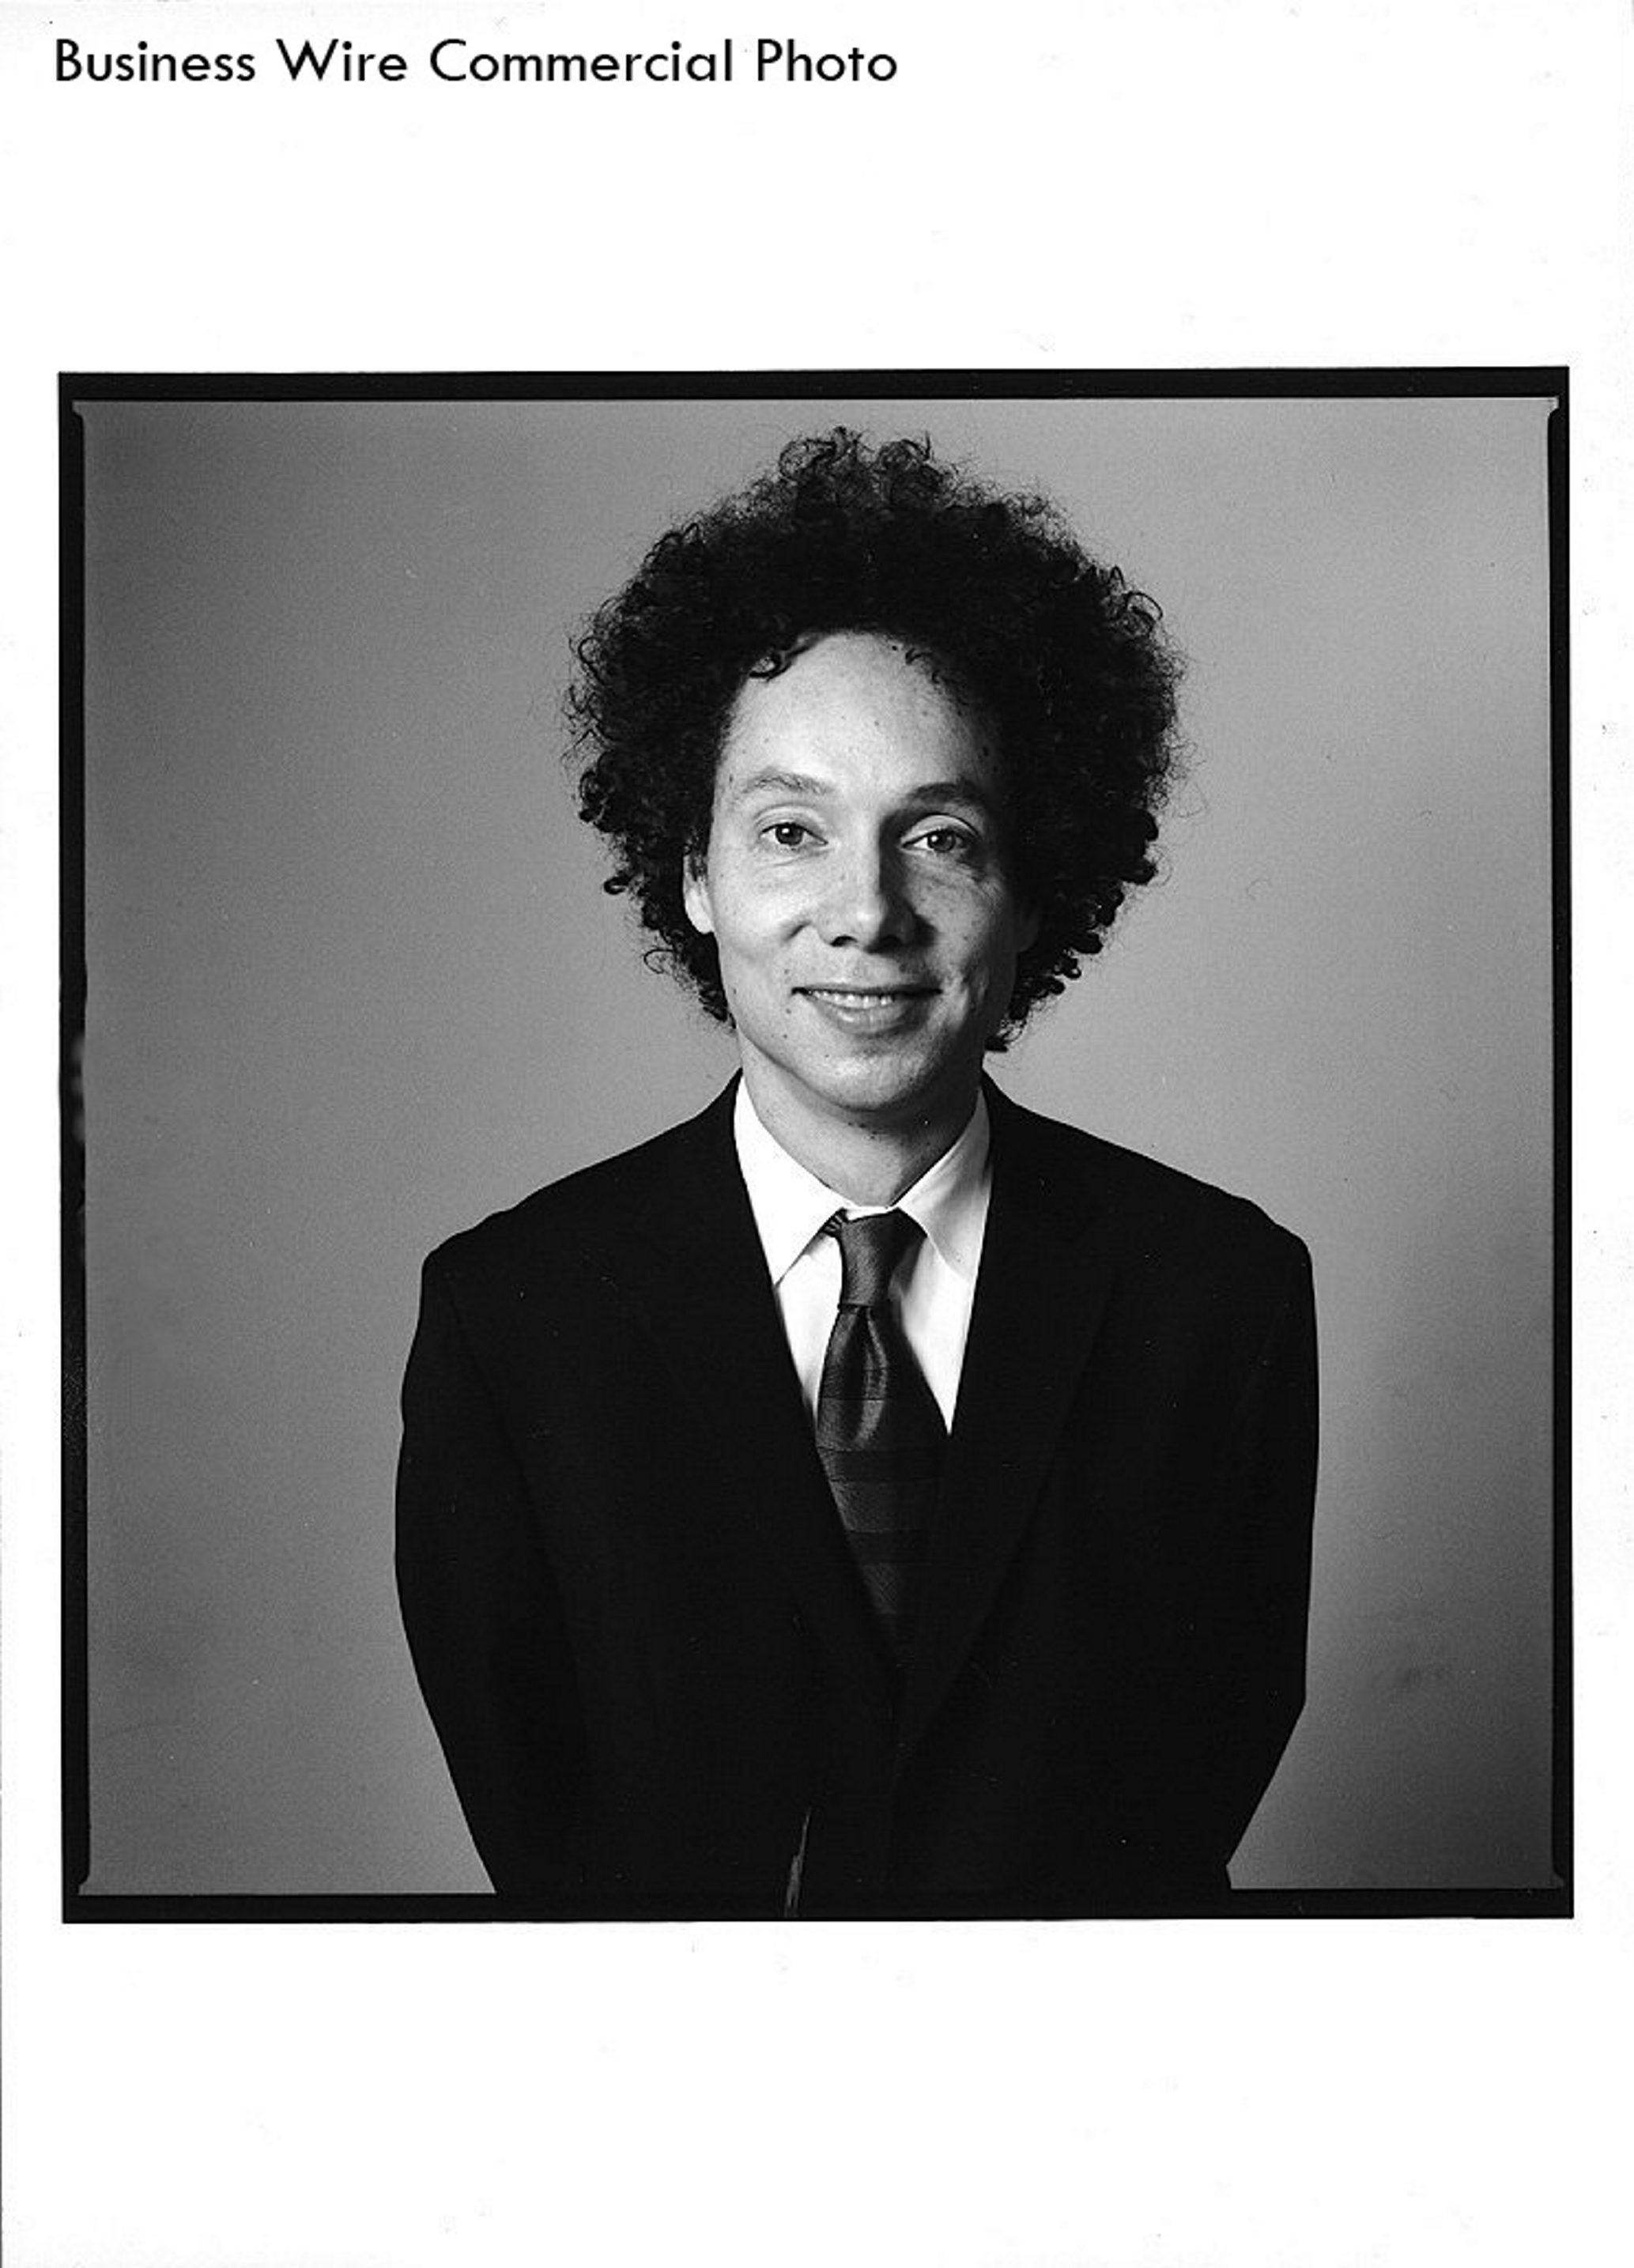 Malcolm Gladwell talks about one of the great heroes of the 20th century.